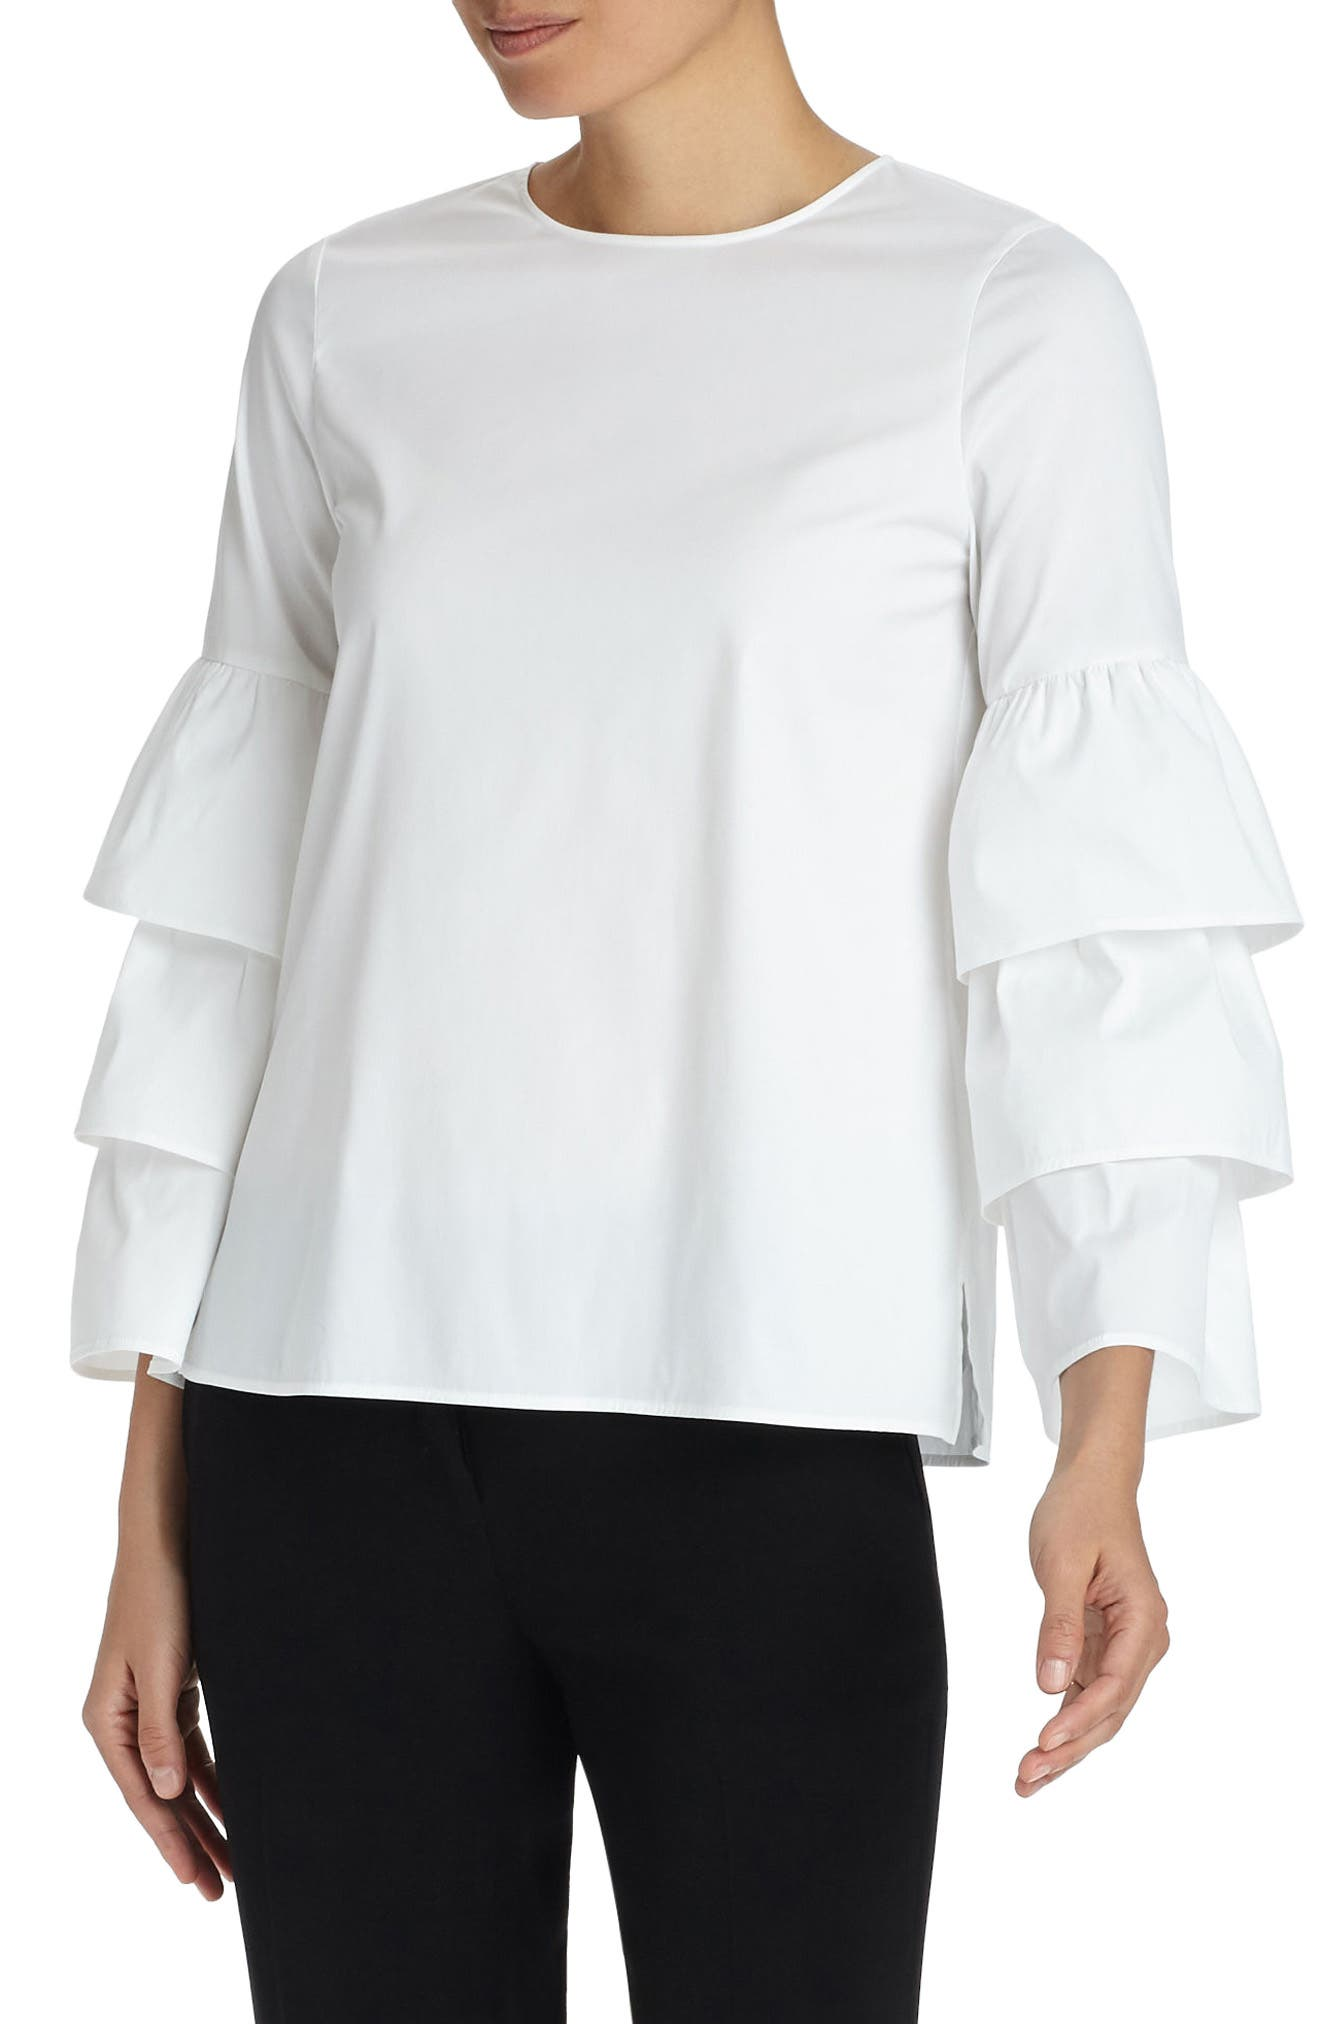 Revina Stretch Cotton Blend Blouse,                             Alternate thumbnail 5, color,                             White